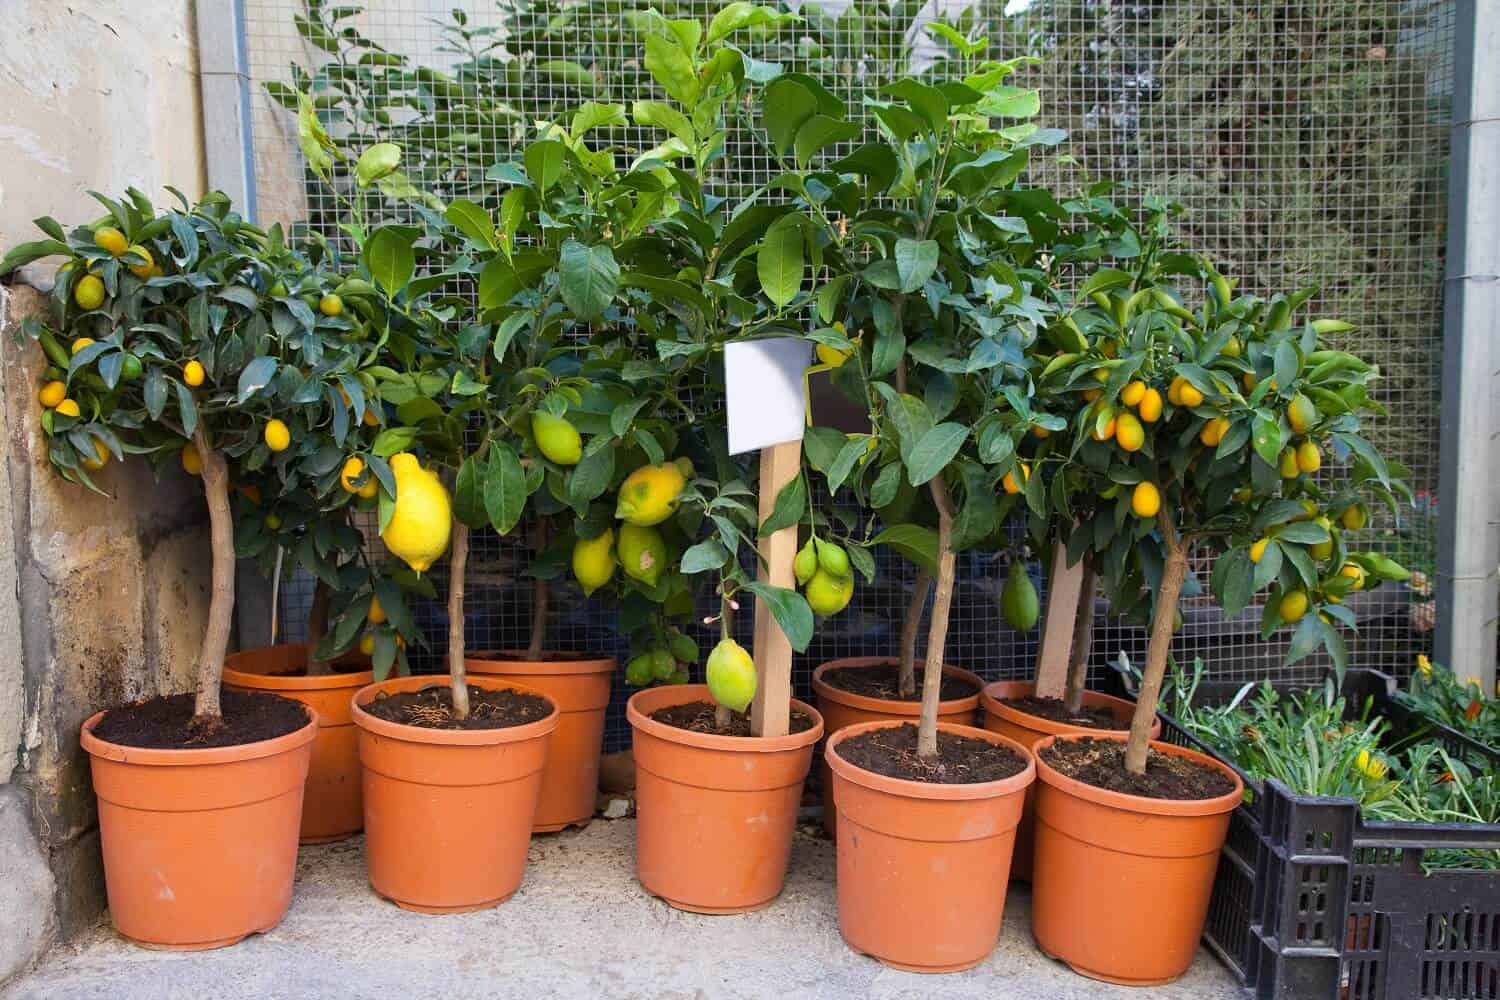 How to Grow a Lemon Tree from Seed (5 Easy Steps)